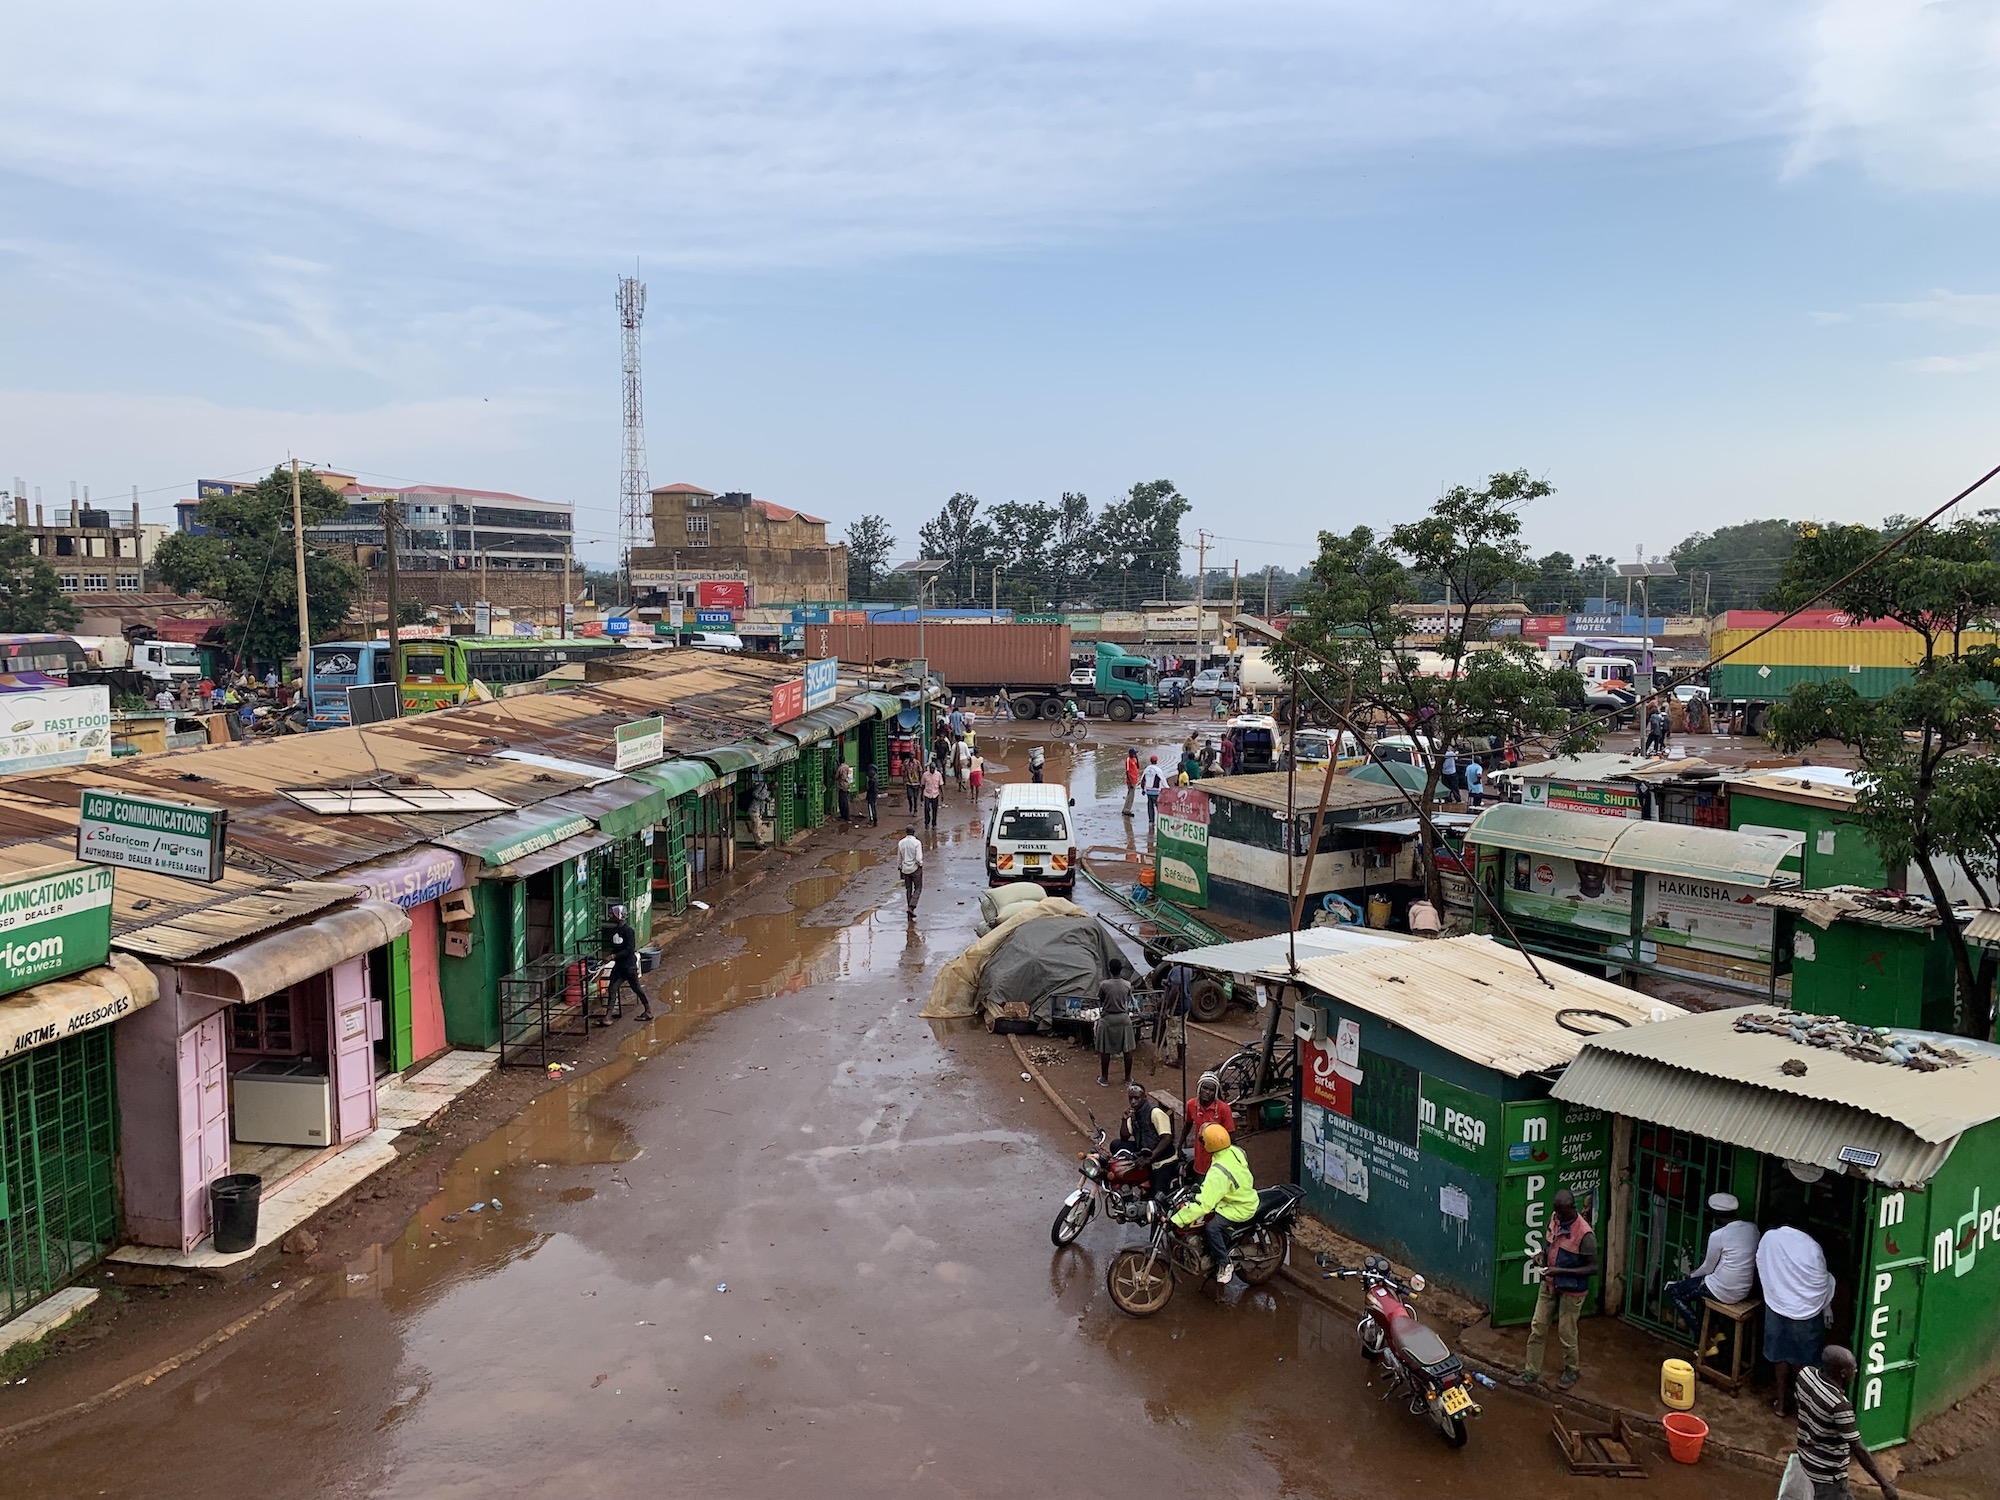 Downtown Busia after a rainy day.